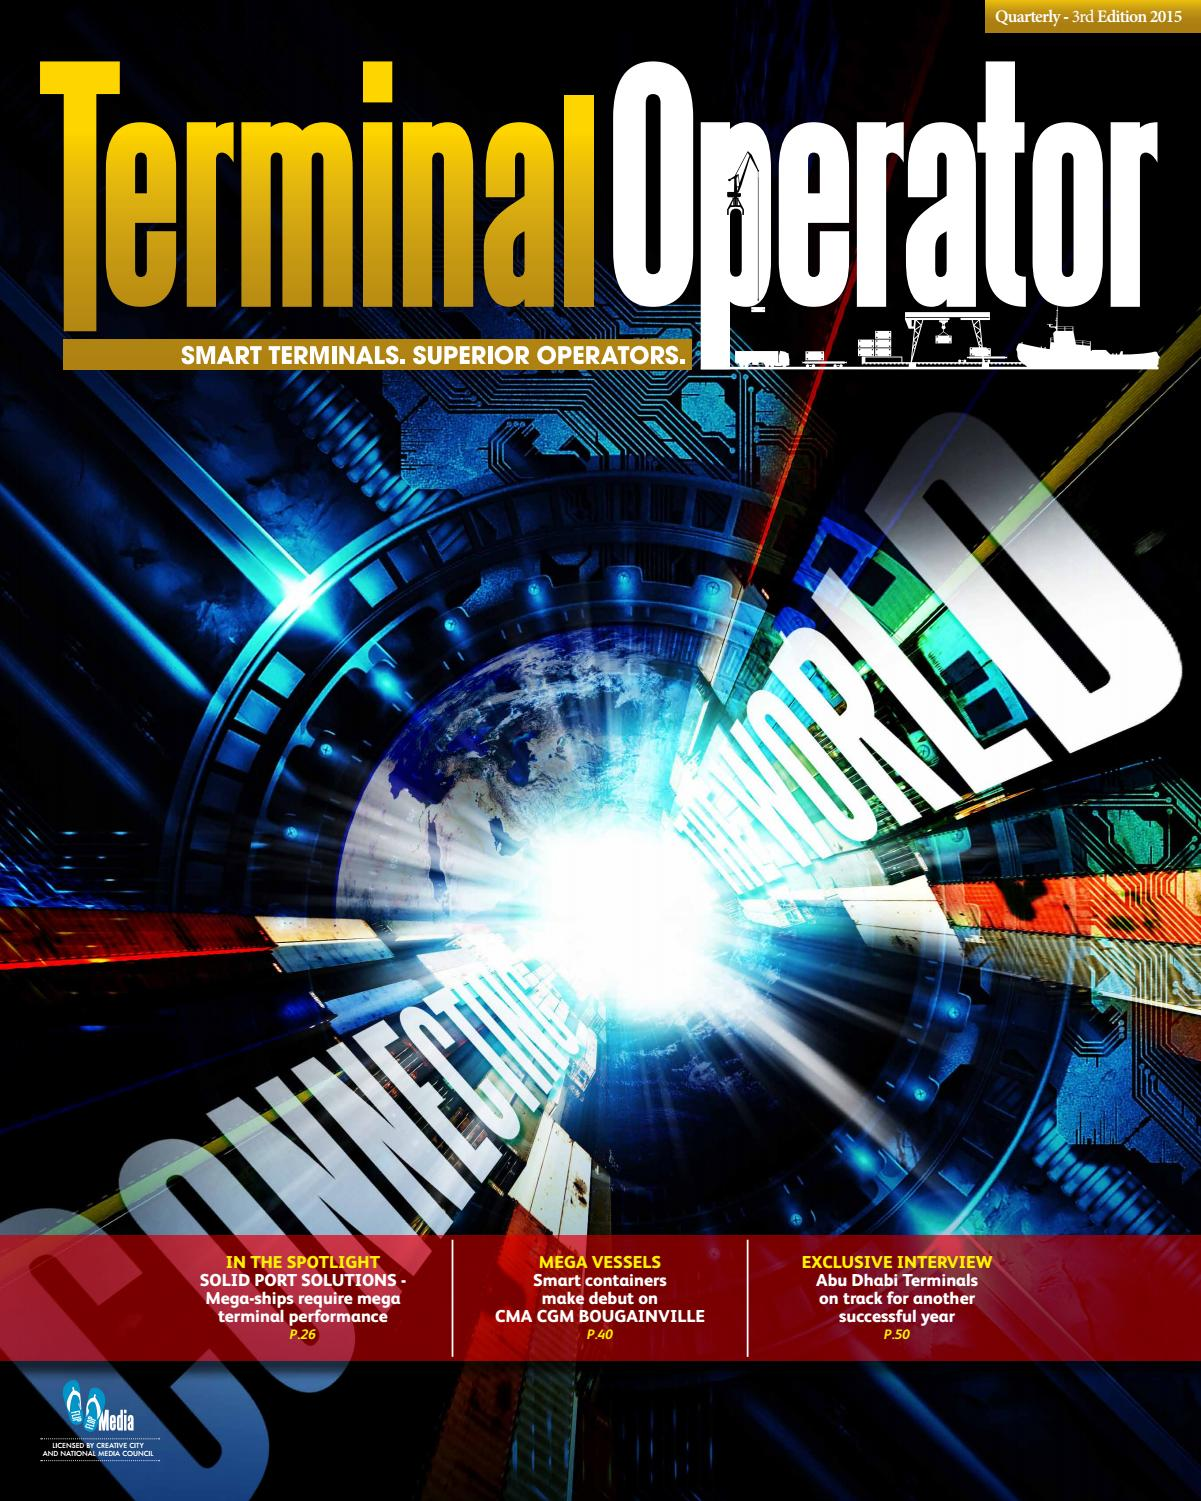 Terminal Operator - 3rd Edition by Mhar Delaben - issuu